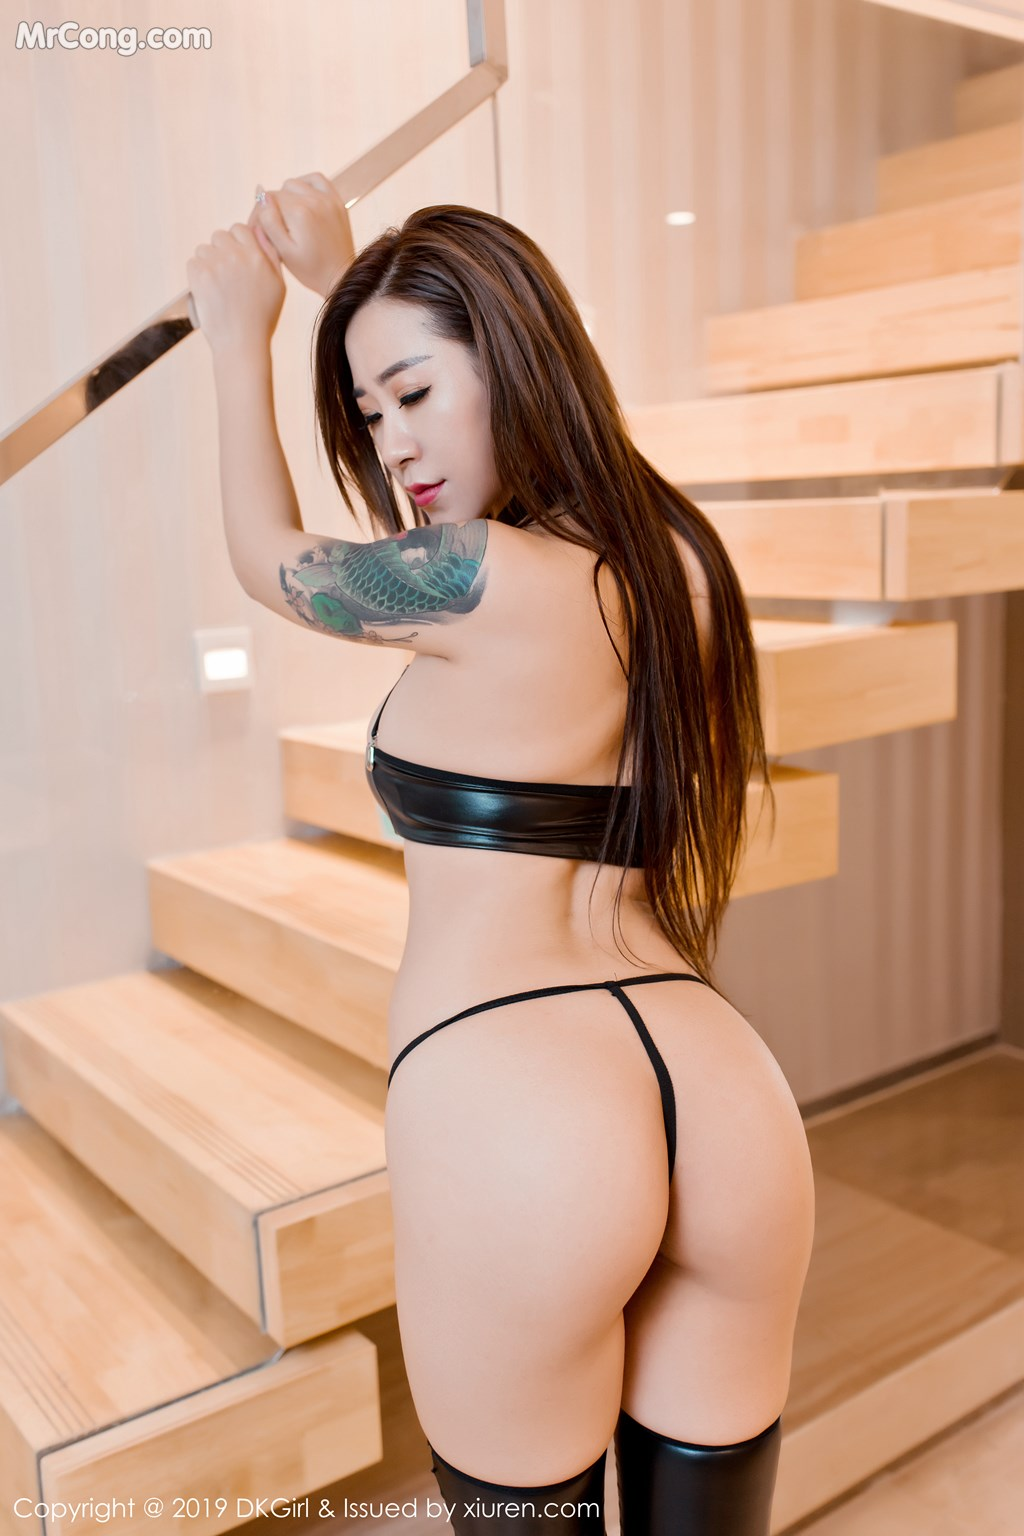 Image DKGirl-Vol.109-Cier-MrCong.com-019 in post DKGirl Vol.109: 雪儿Cier (49 ảnh)